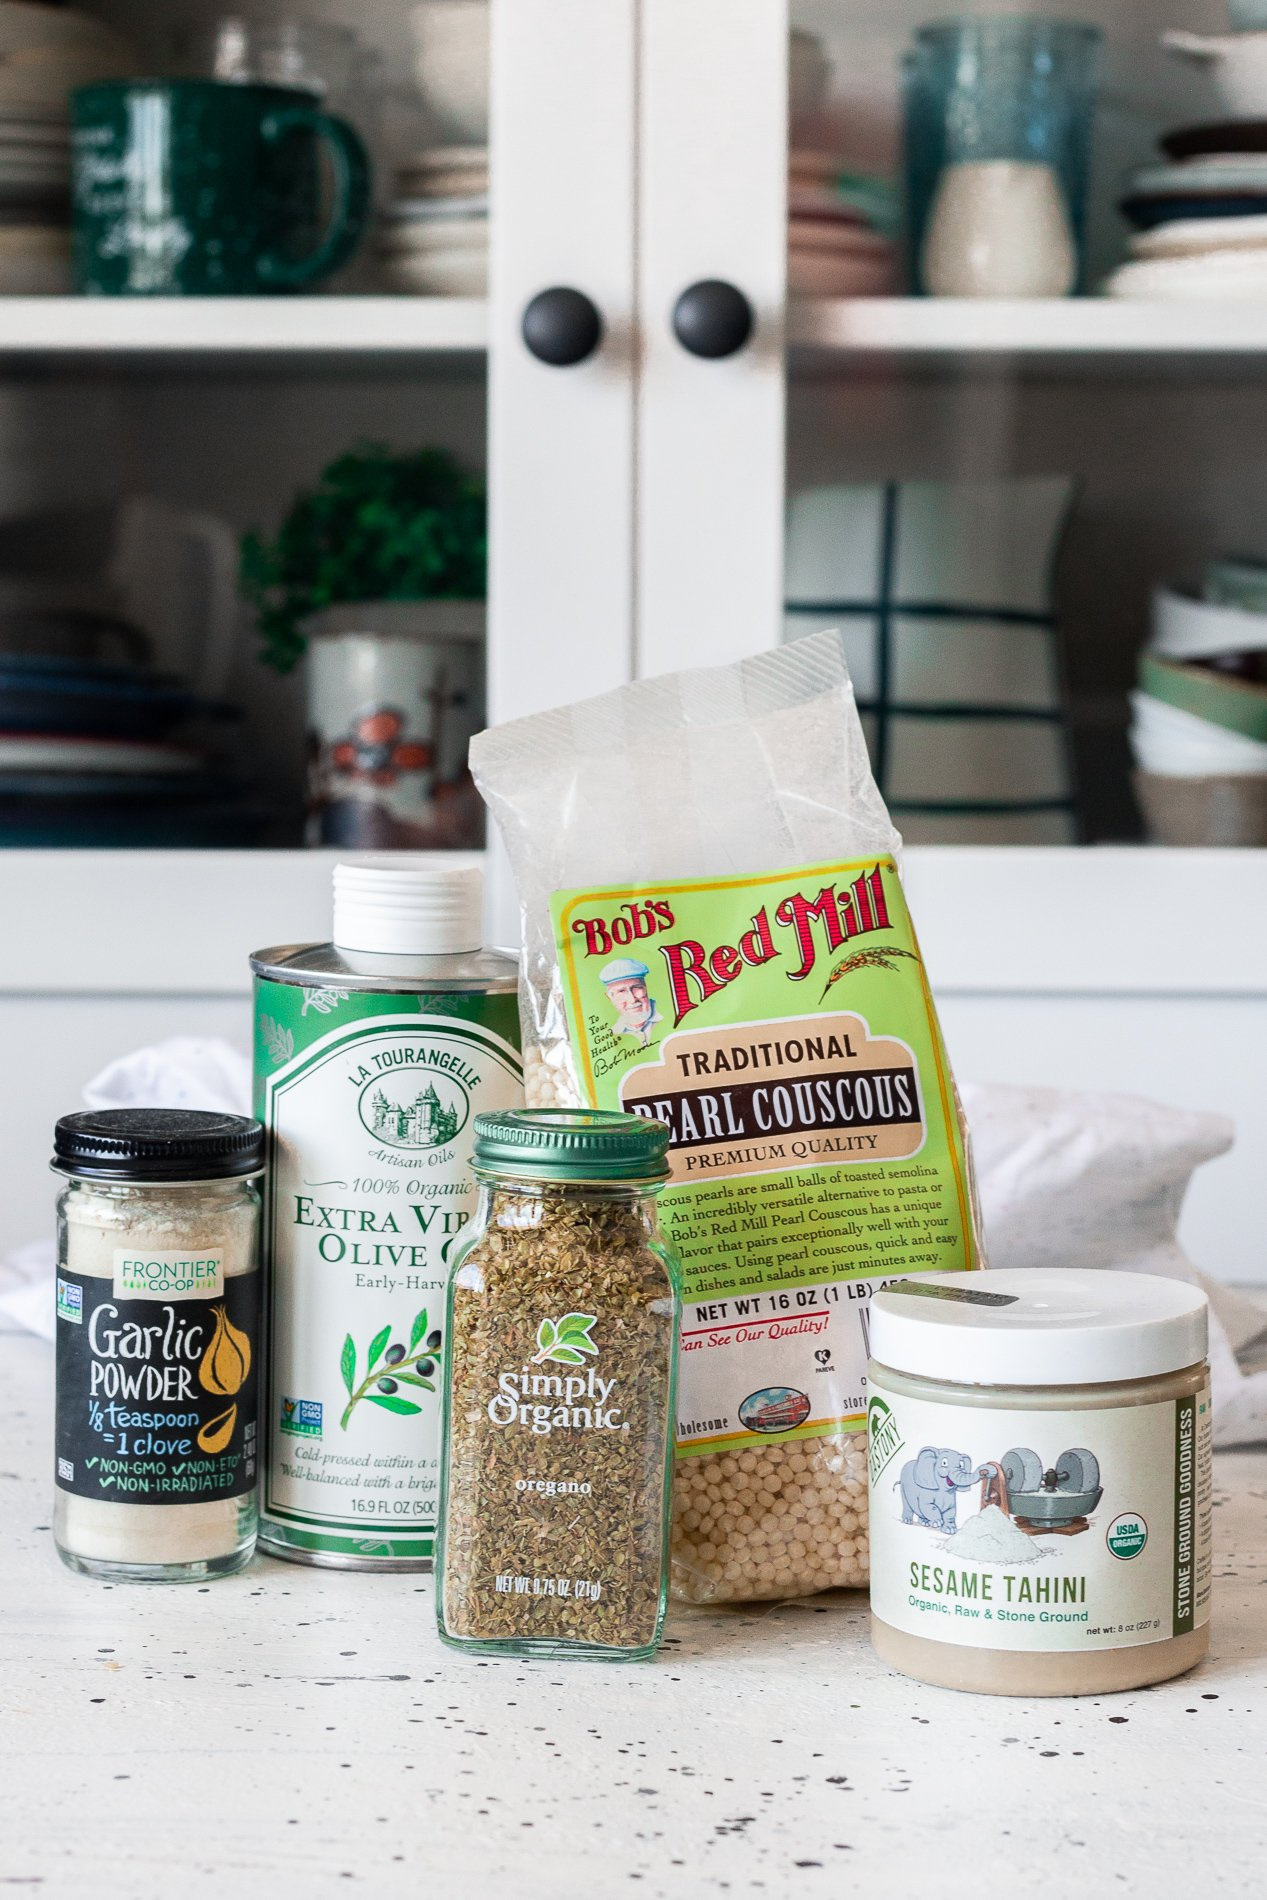 straight forward view of jars of garlic powder and oregano, a container of extra virgin olive oil, a bag of dried pealed couscous, and a jar of tahini